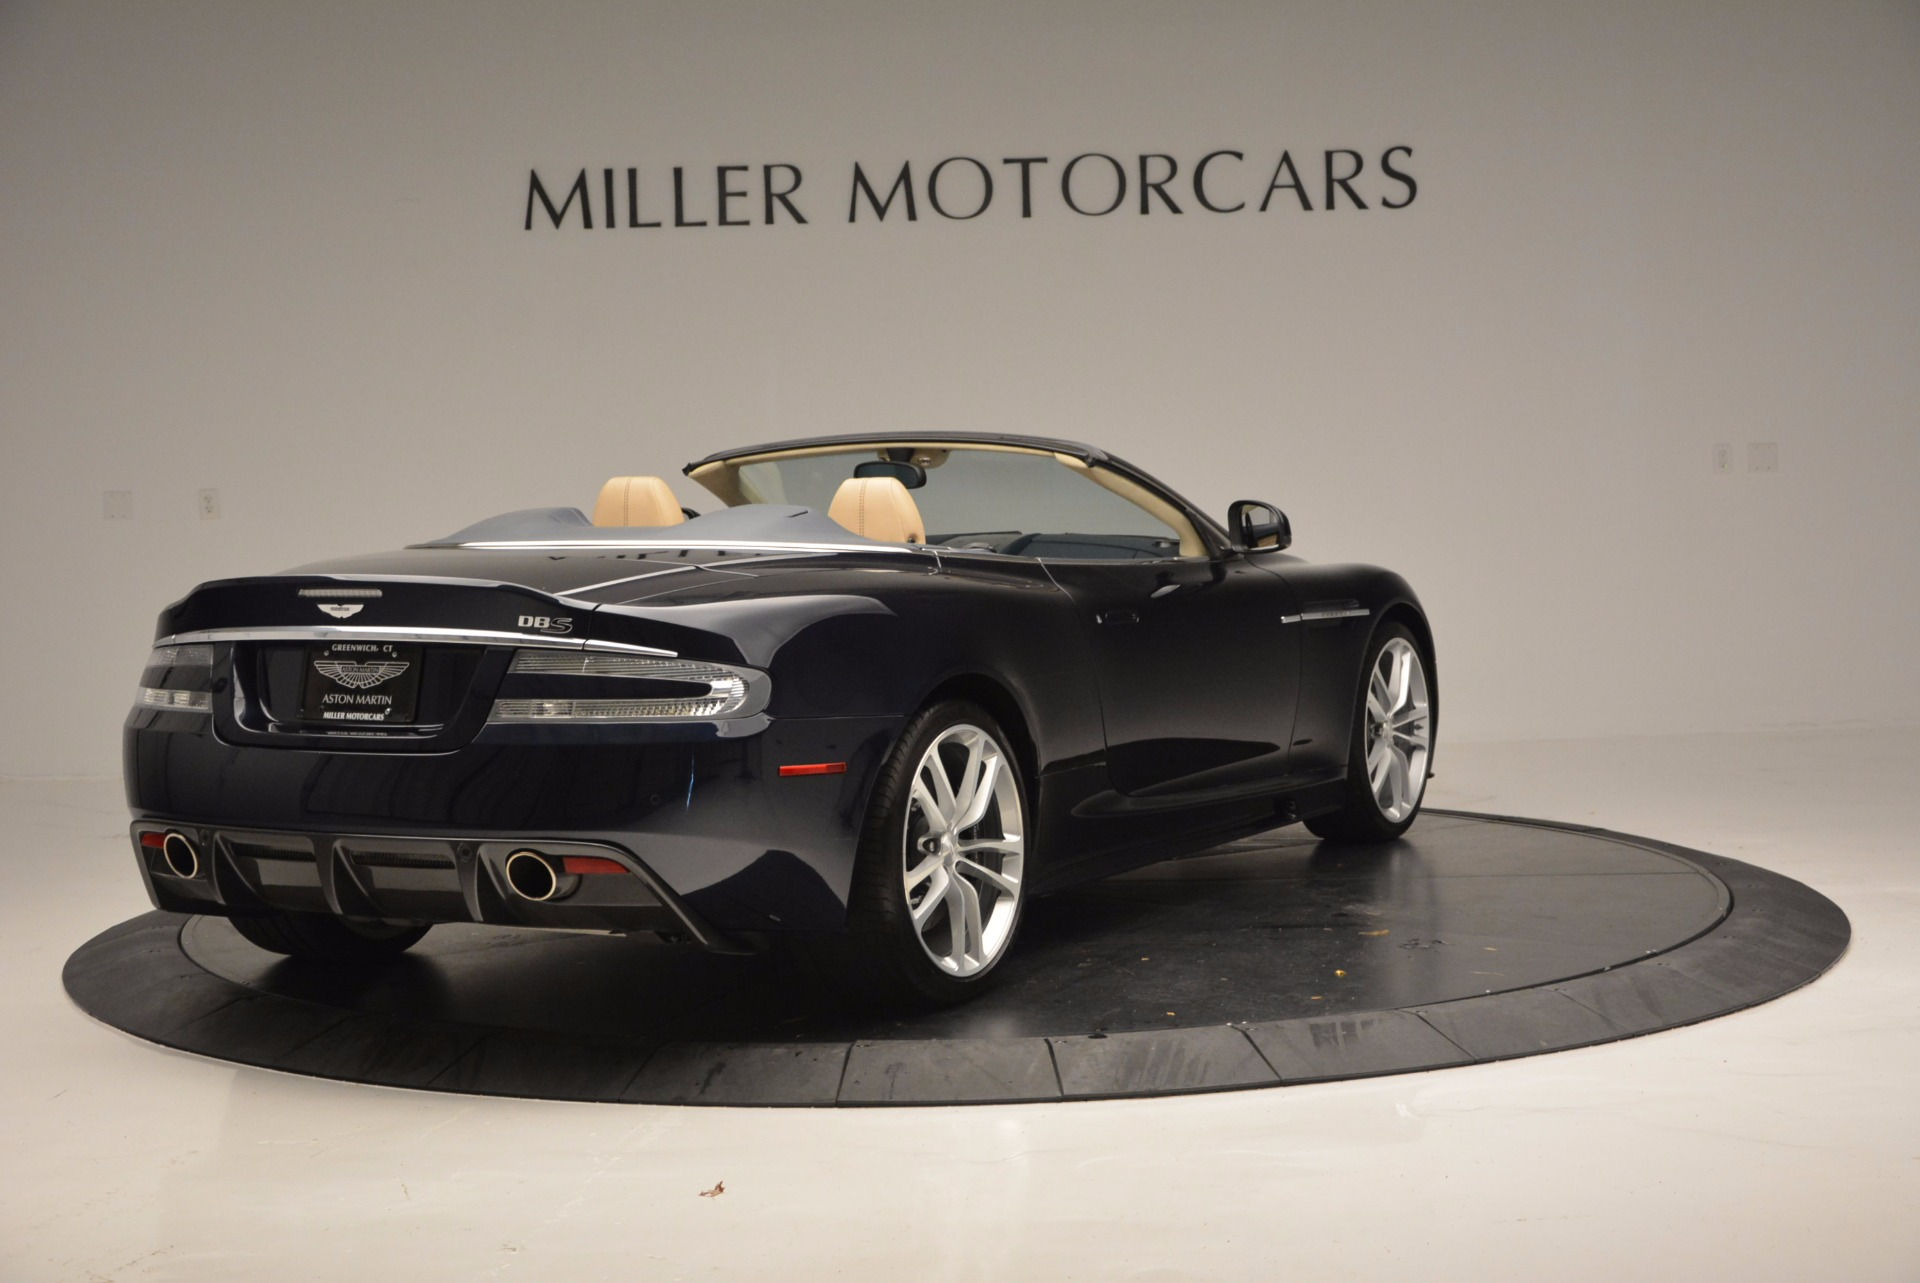 Used 2012 Aston Martin DBS Volante For Sale In Westport, CT 644_p7